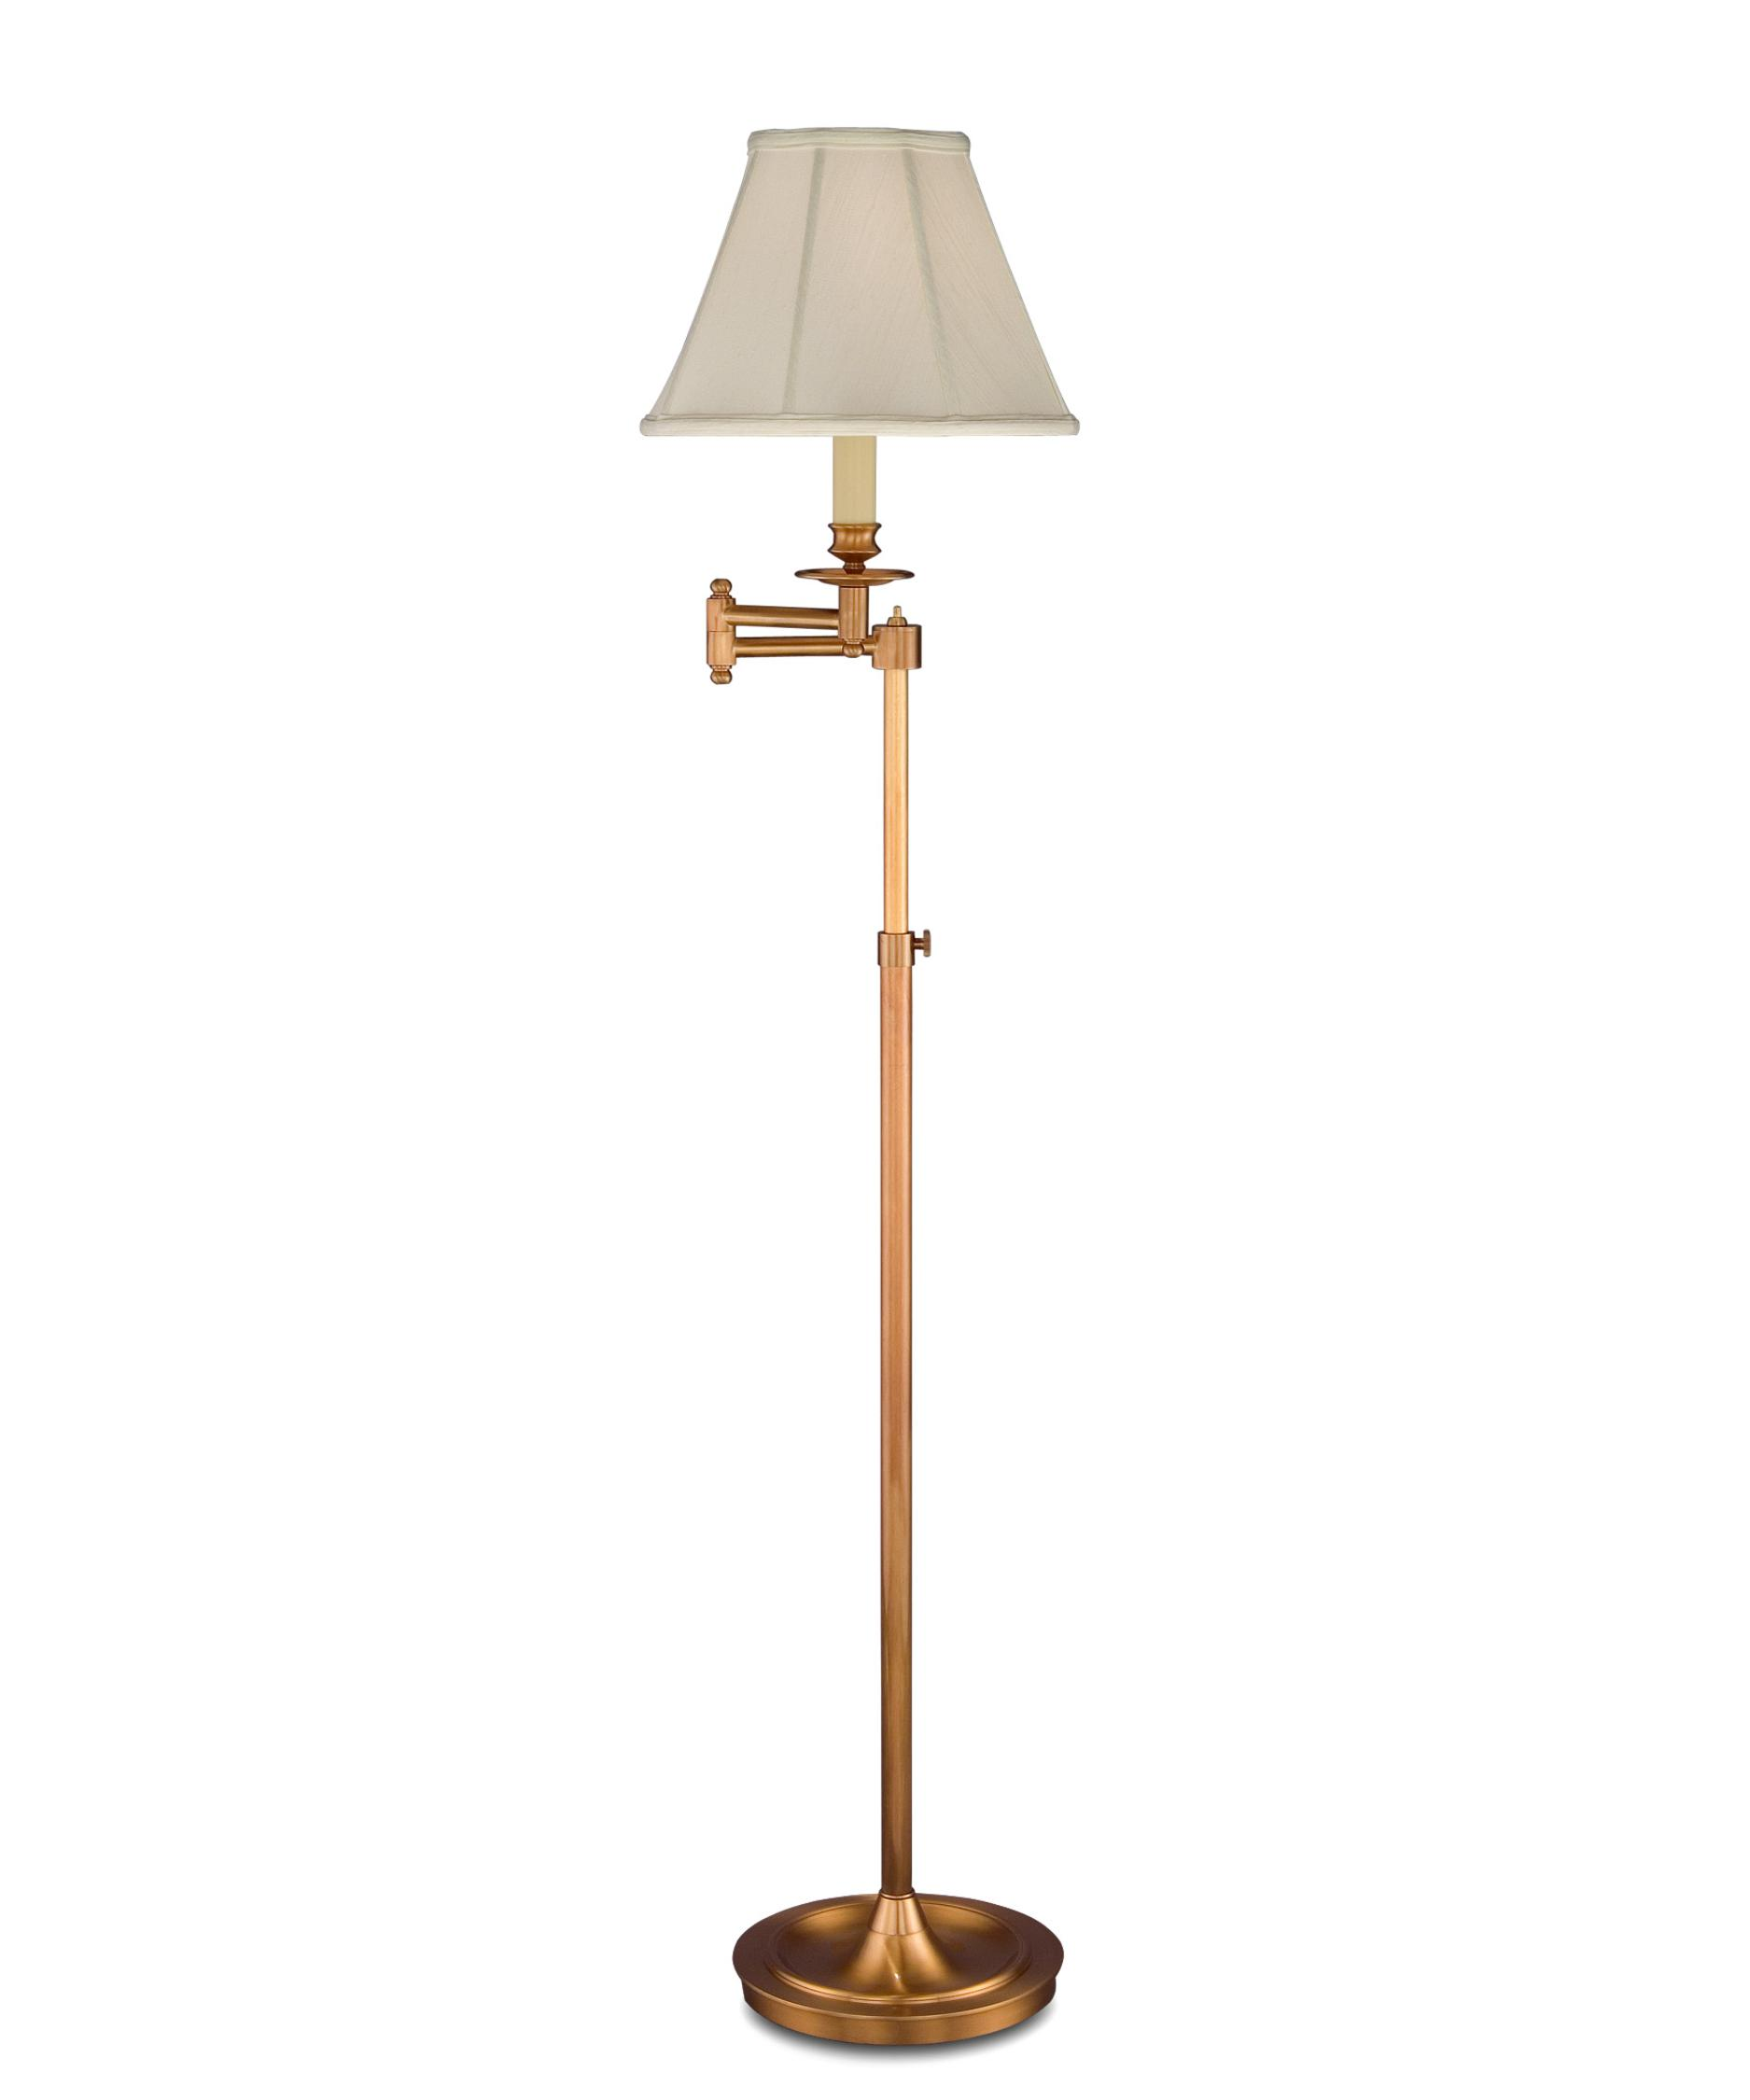 remington lamp 1958 floor lamp in antique brass capitol lighting 1. Black Bedroom Furniture Sets. Home Design Ideas